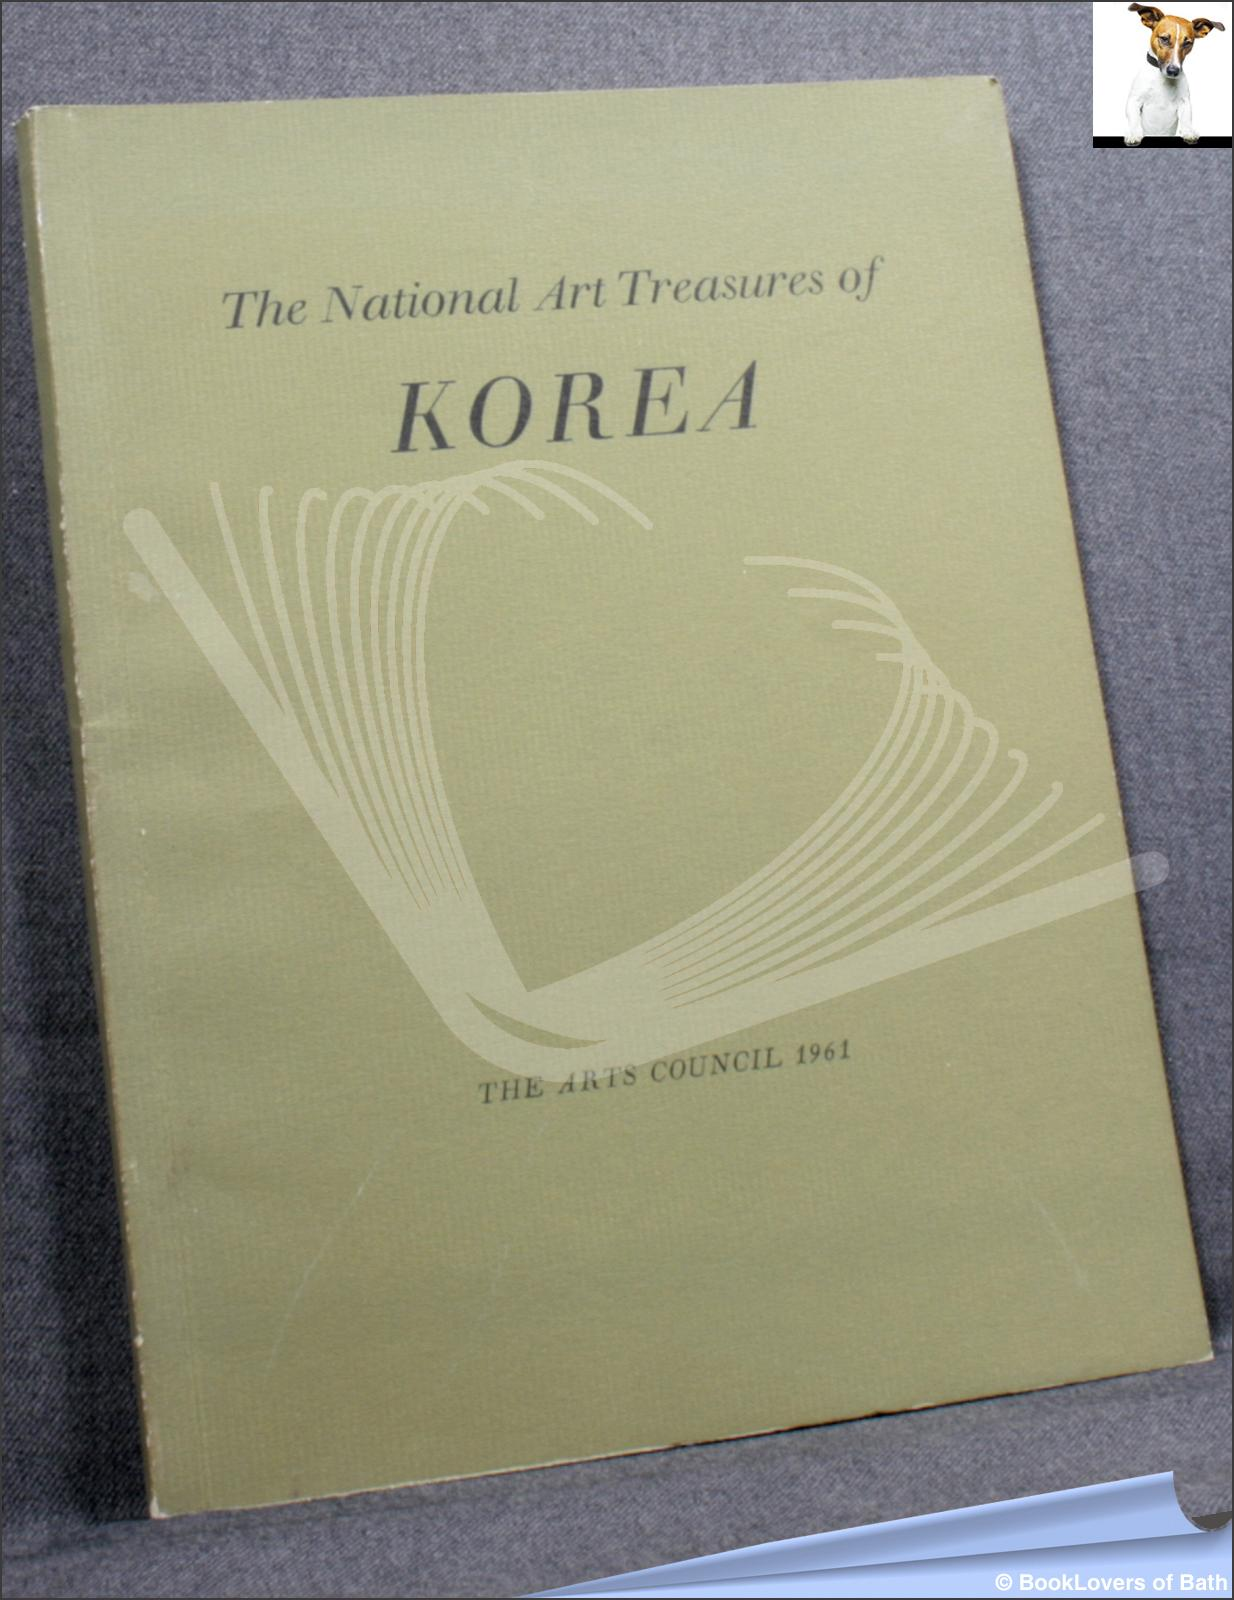 An Exhibition of National Art Treasures of Korea Lent by the Government of the Republic of Korea - Anon.